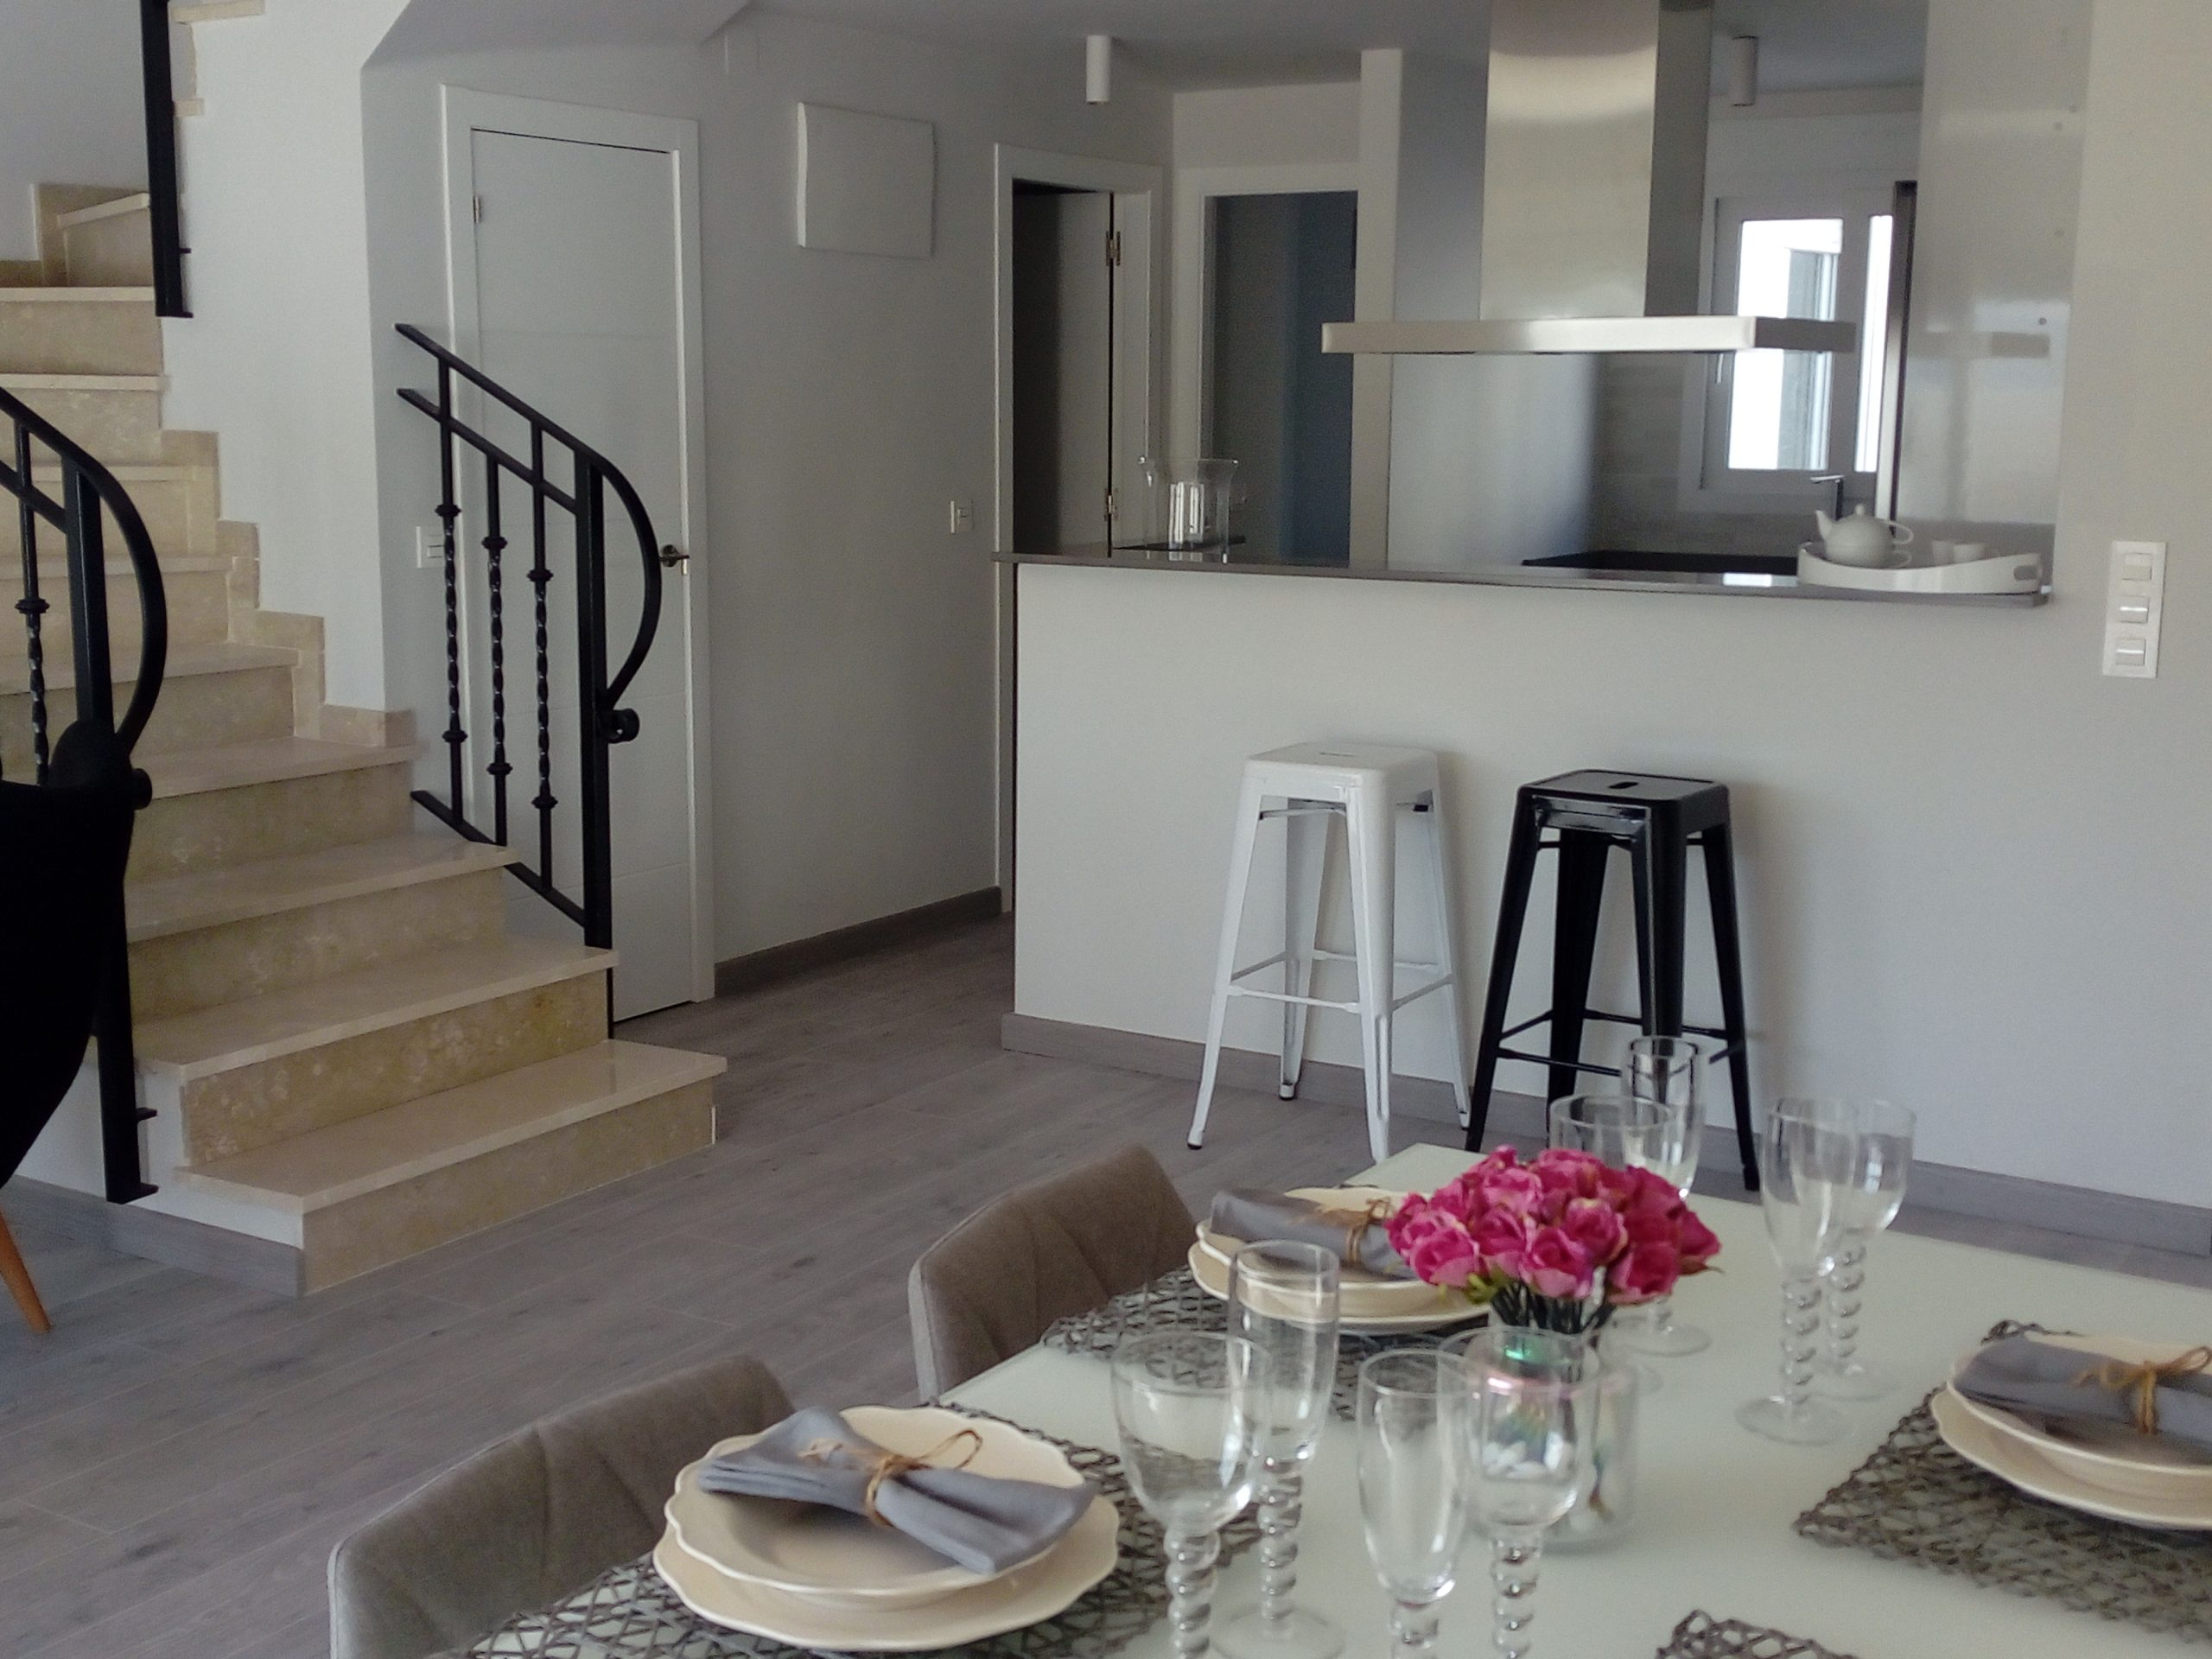 Townhouses at walking distance from the beach